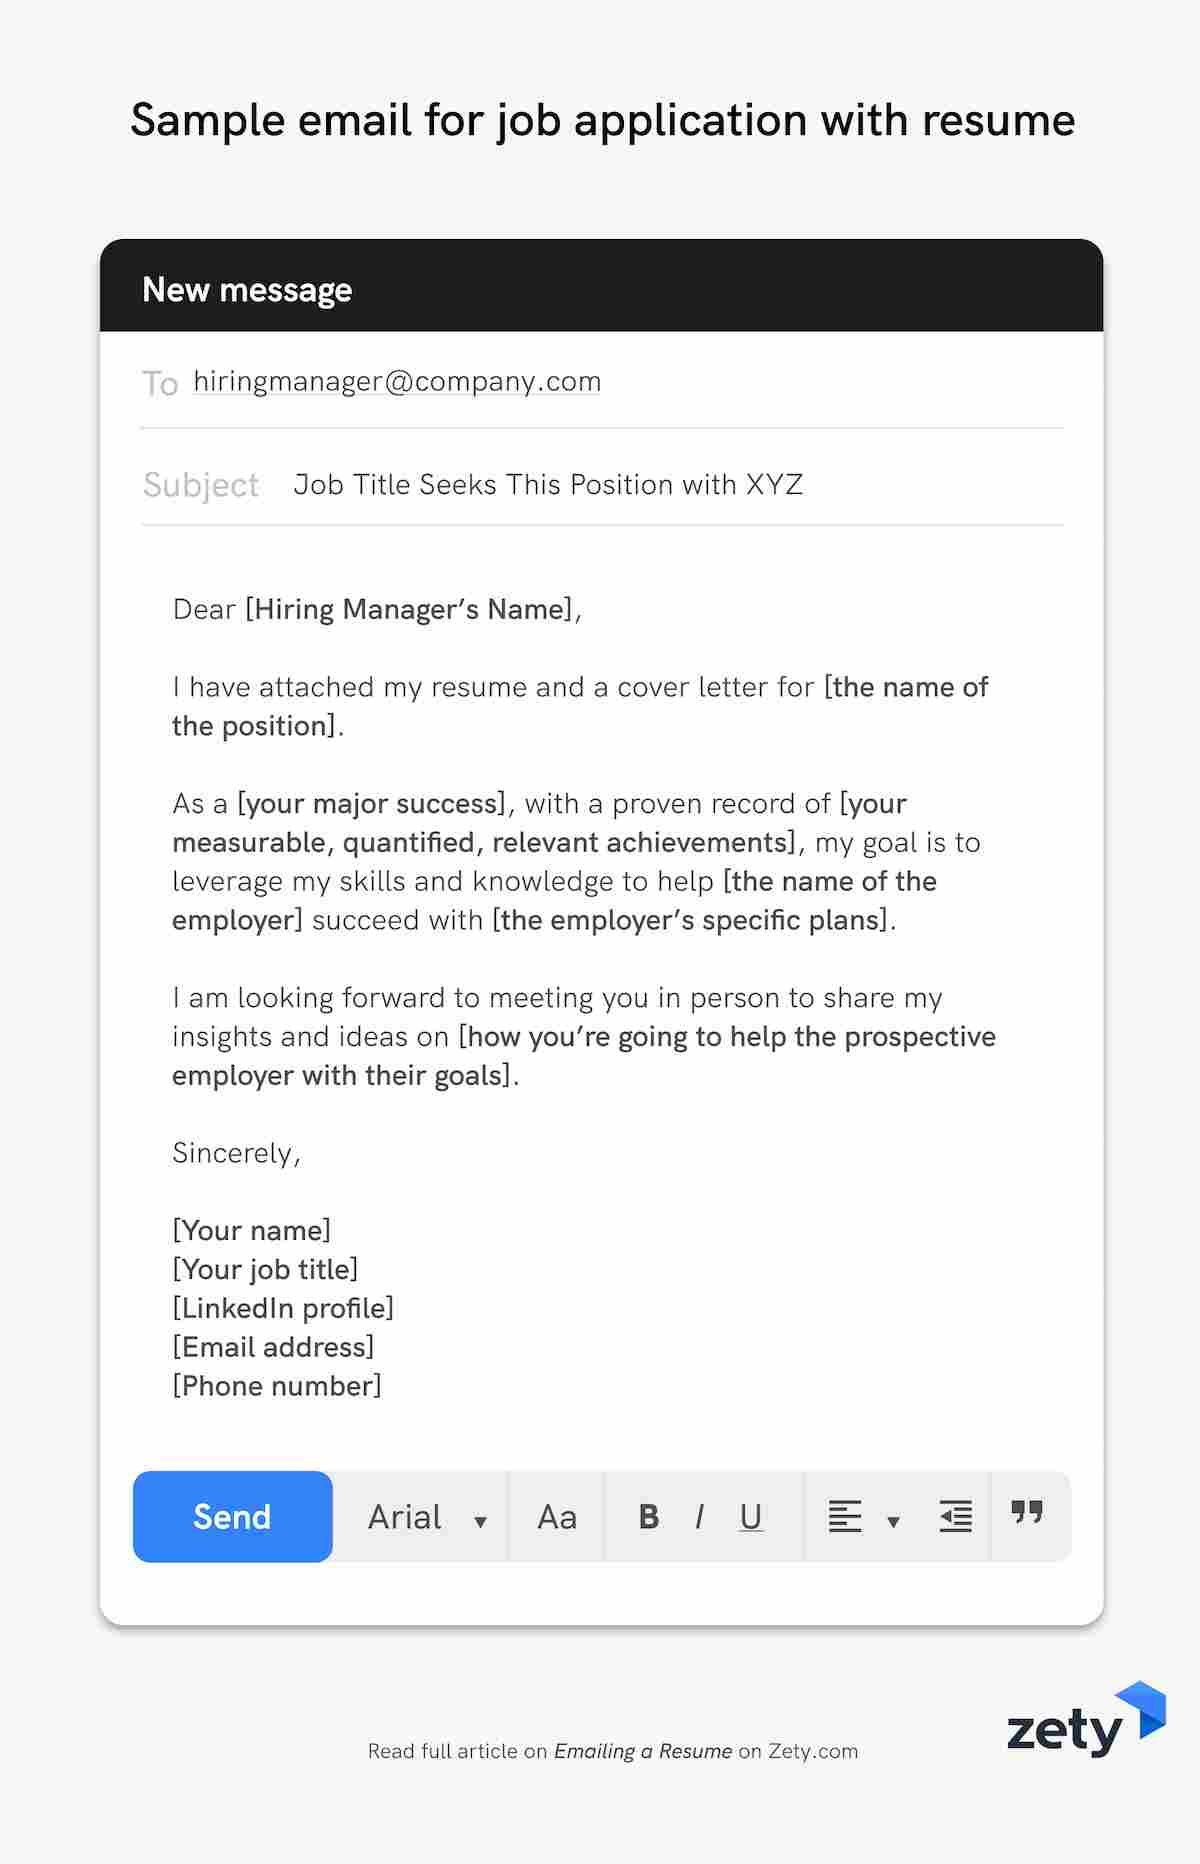 emailing resume job application email samples title for sending sample with safety watch Resume Title For Sending Resume